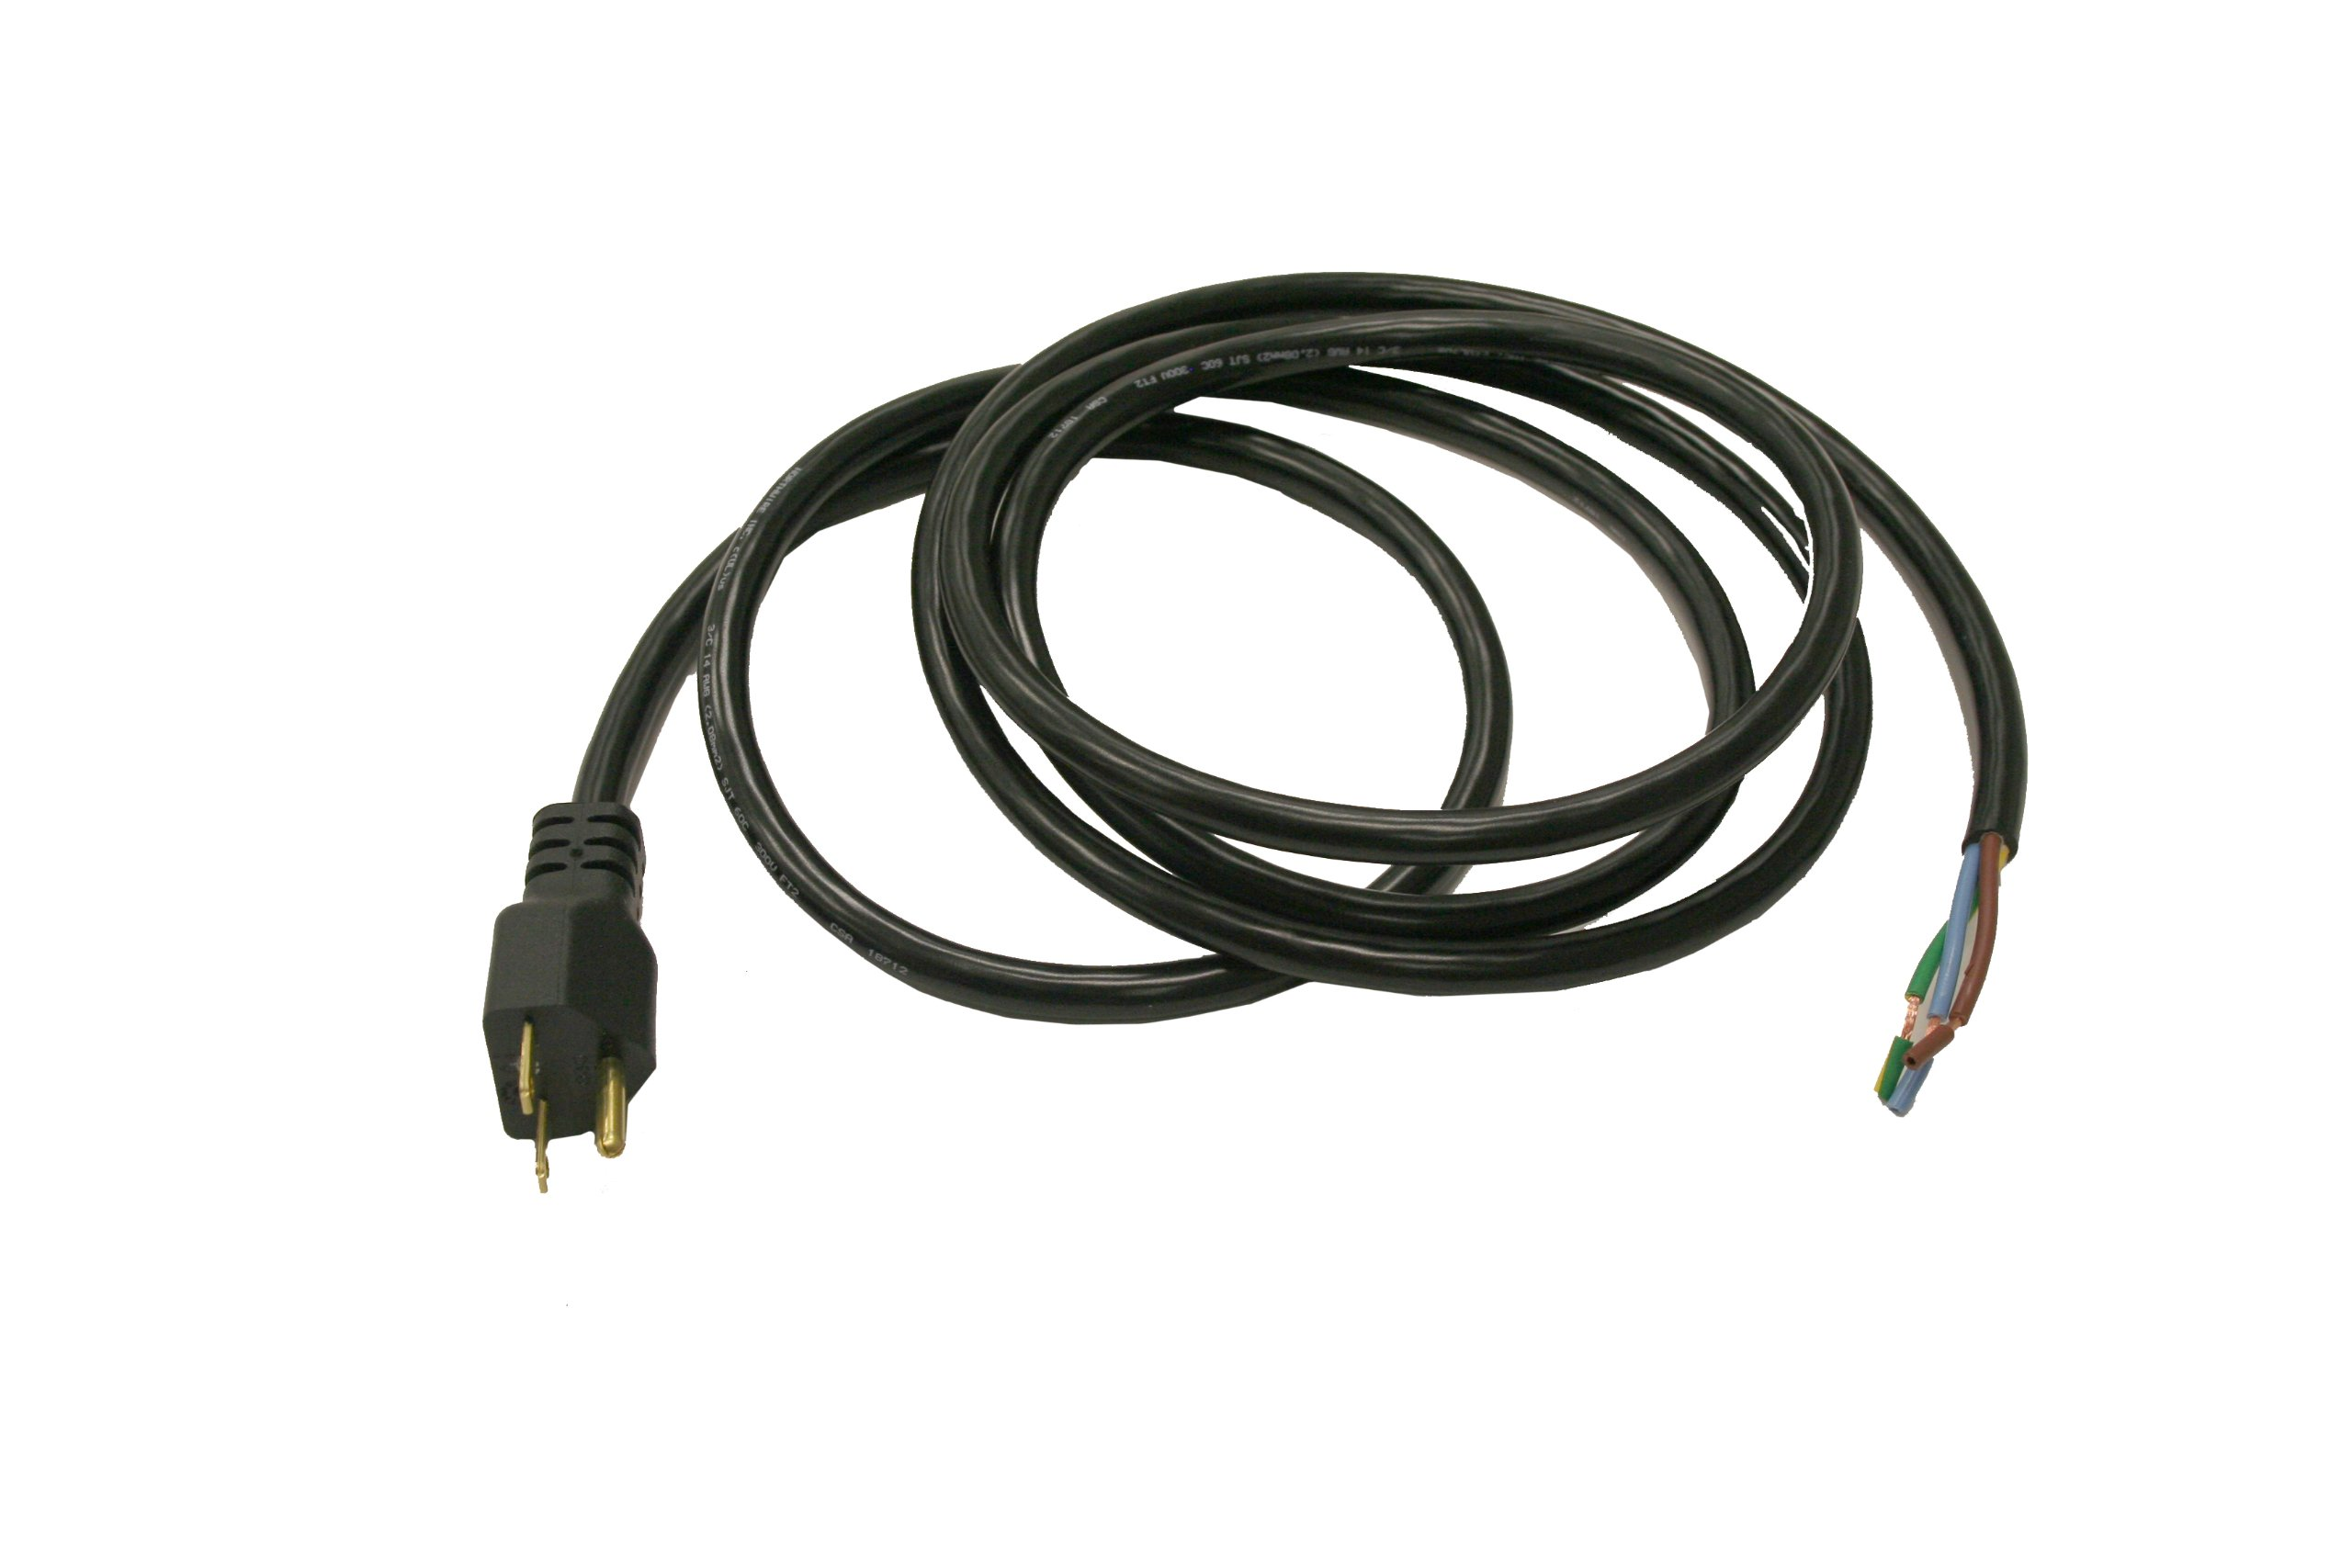 Interpower 86224570 North American NEMA 6-15, Power Cord, NEMA 6-15 Plug Type, Black Plug Color, Black Cable Color, 15A Amperage, 250VAC Voltage, 2.5m Length